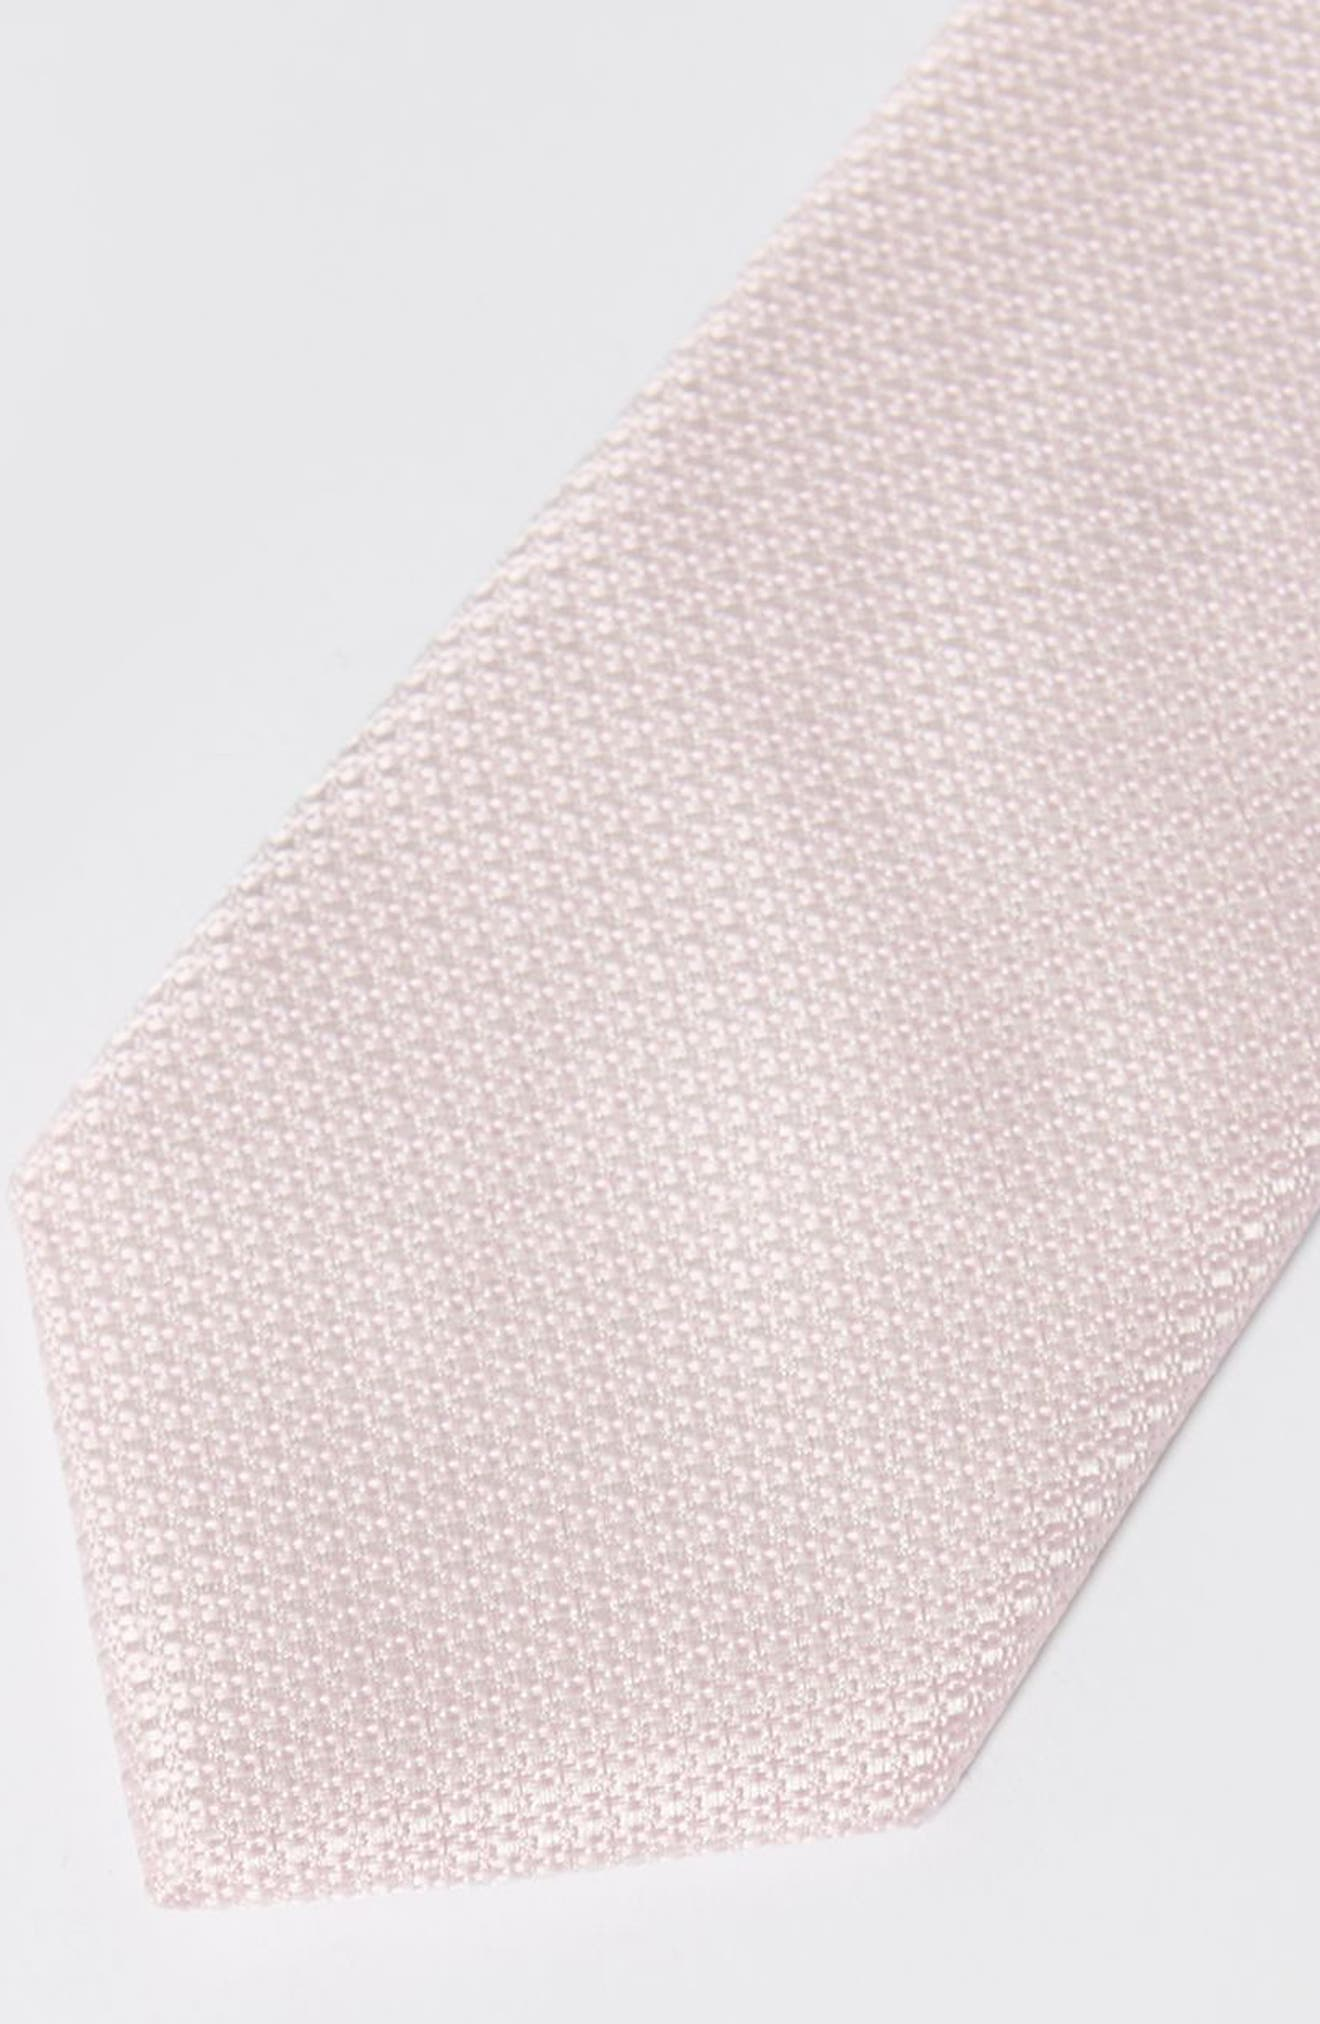 Textured Woven Tie,                             Alternate thumbnail 2, color,                             Pink